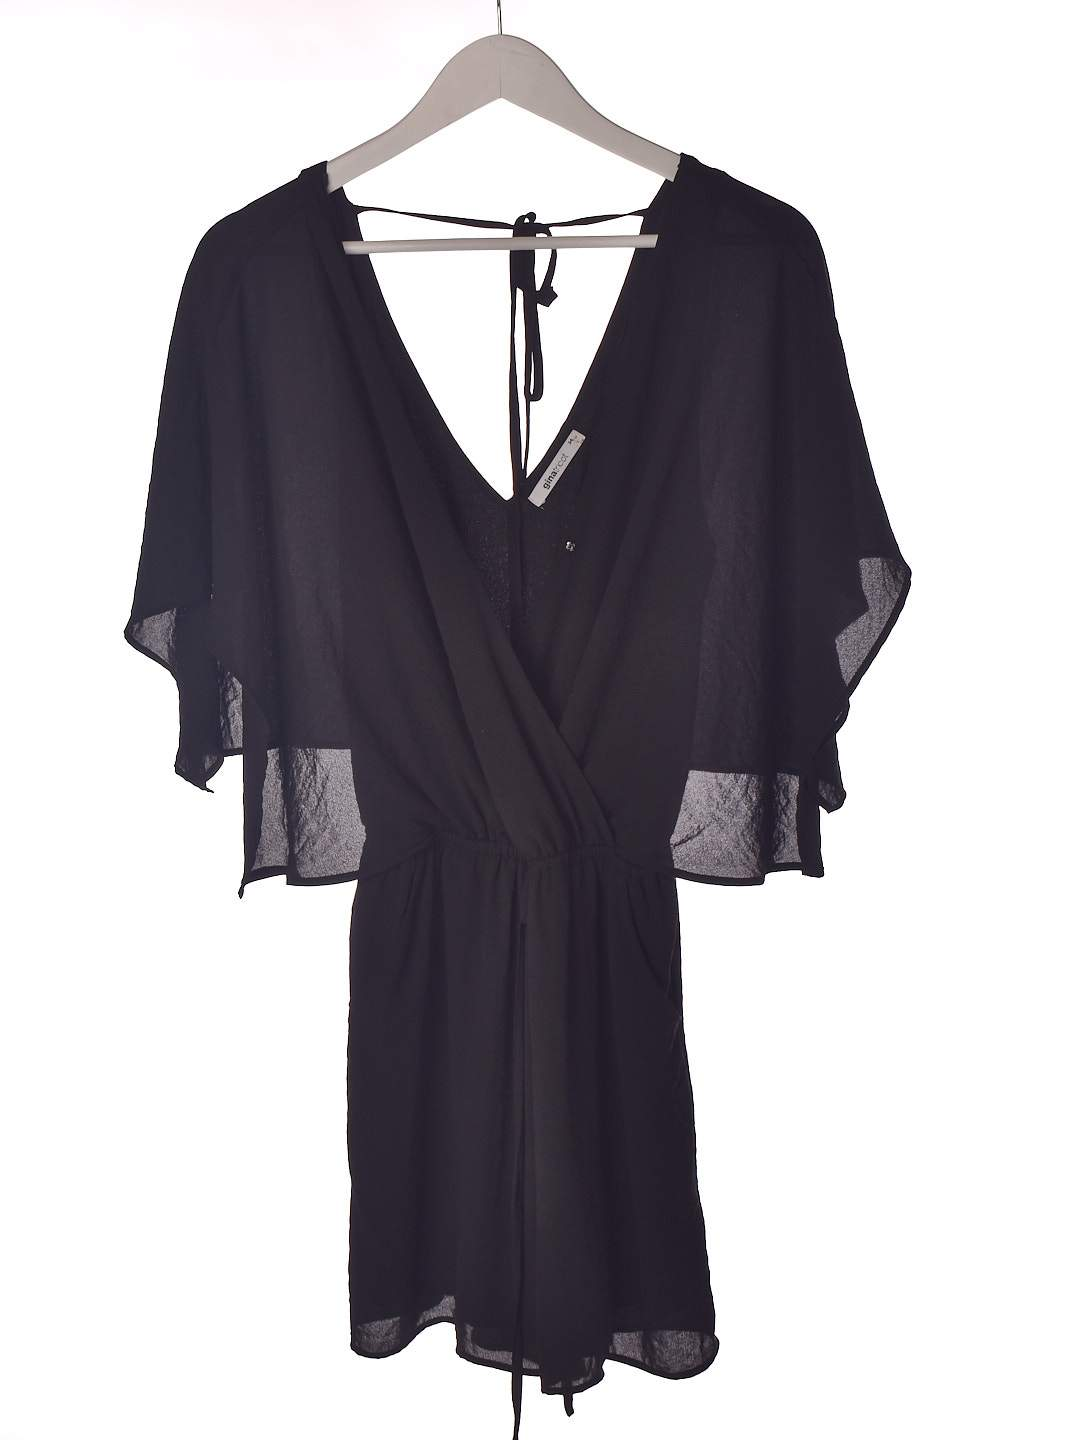 Sød sort playsuit